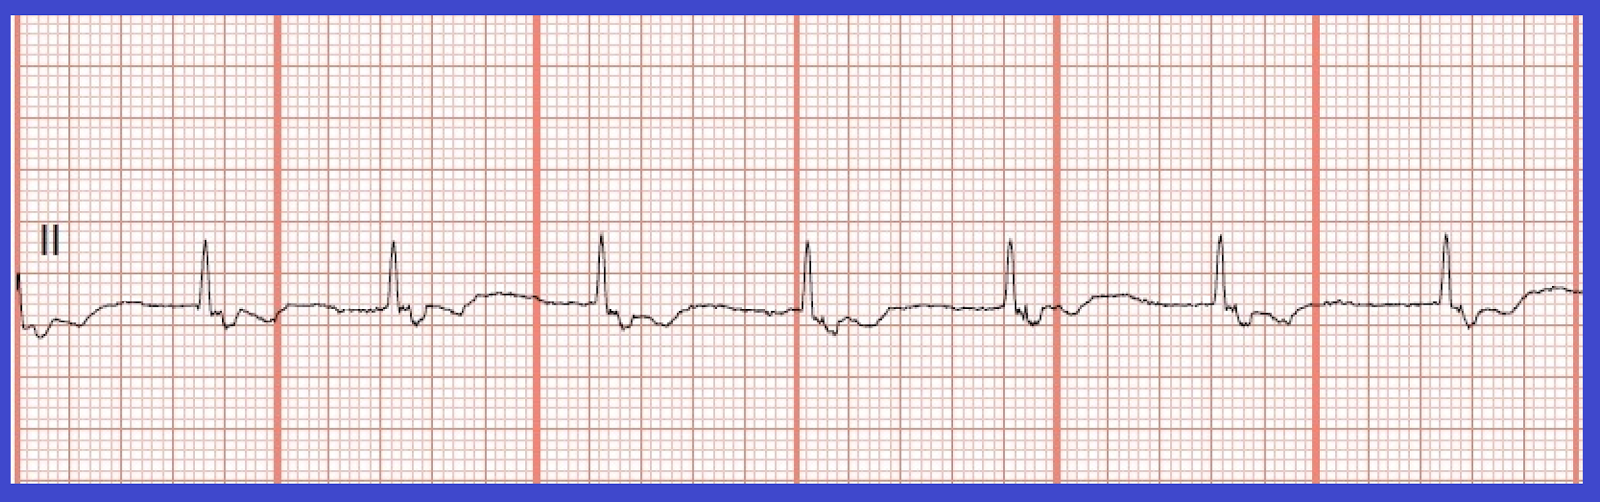 Accelerated junctional rhythm pngAccelerated Junctional Rhythm